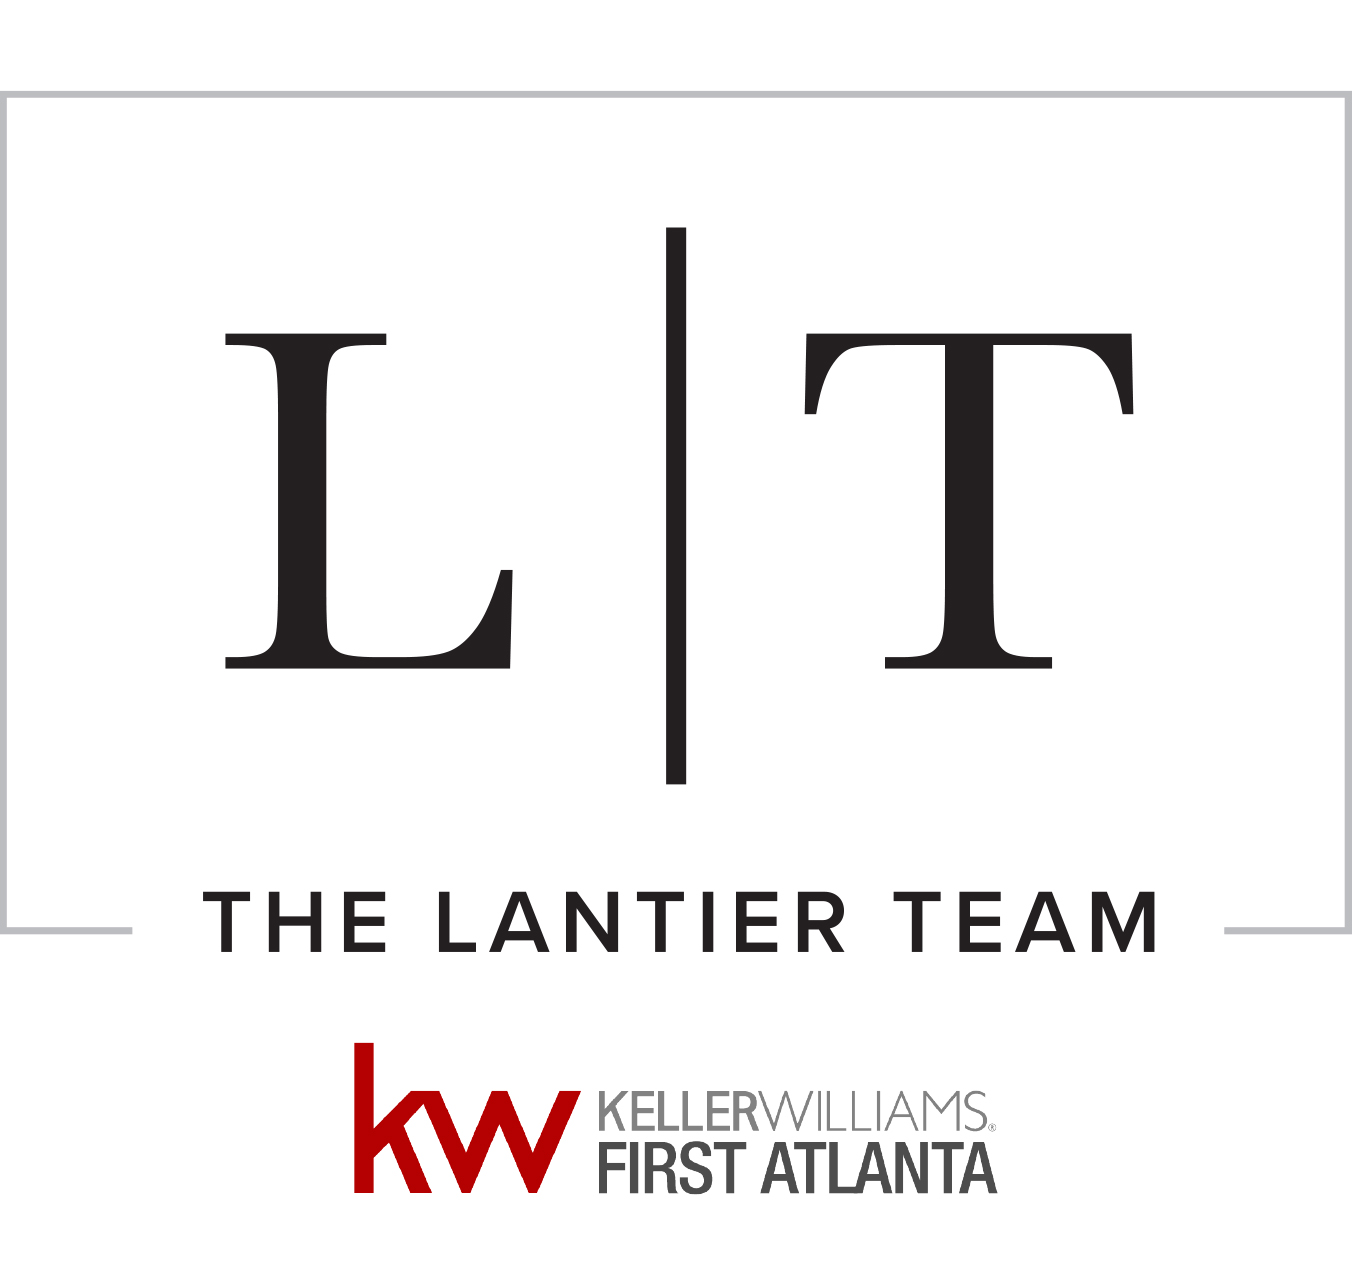 Sheila Lantier, The Lantier Team - KW